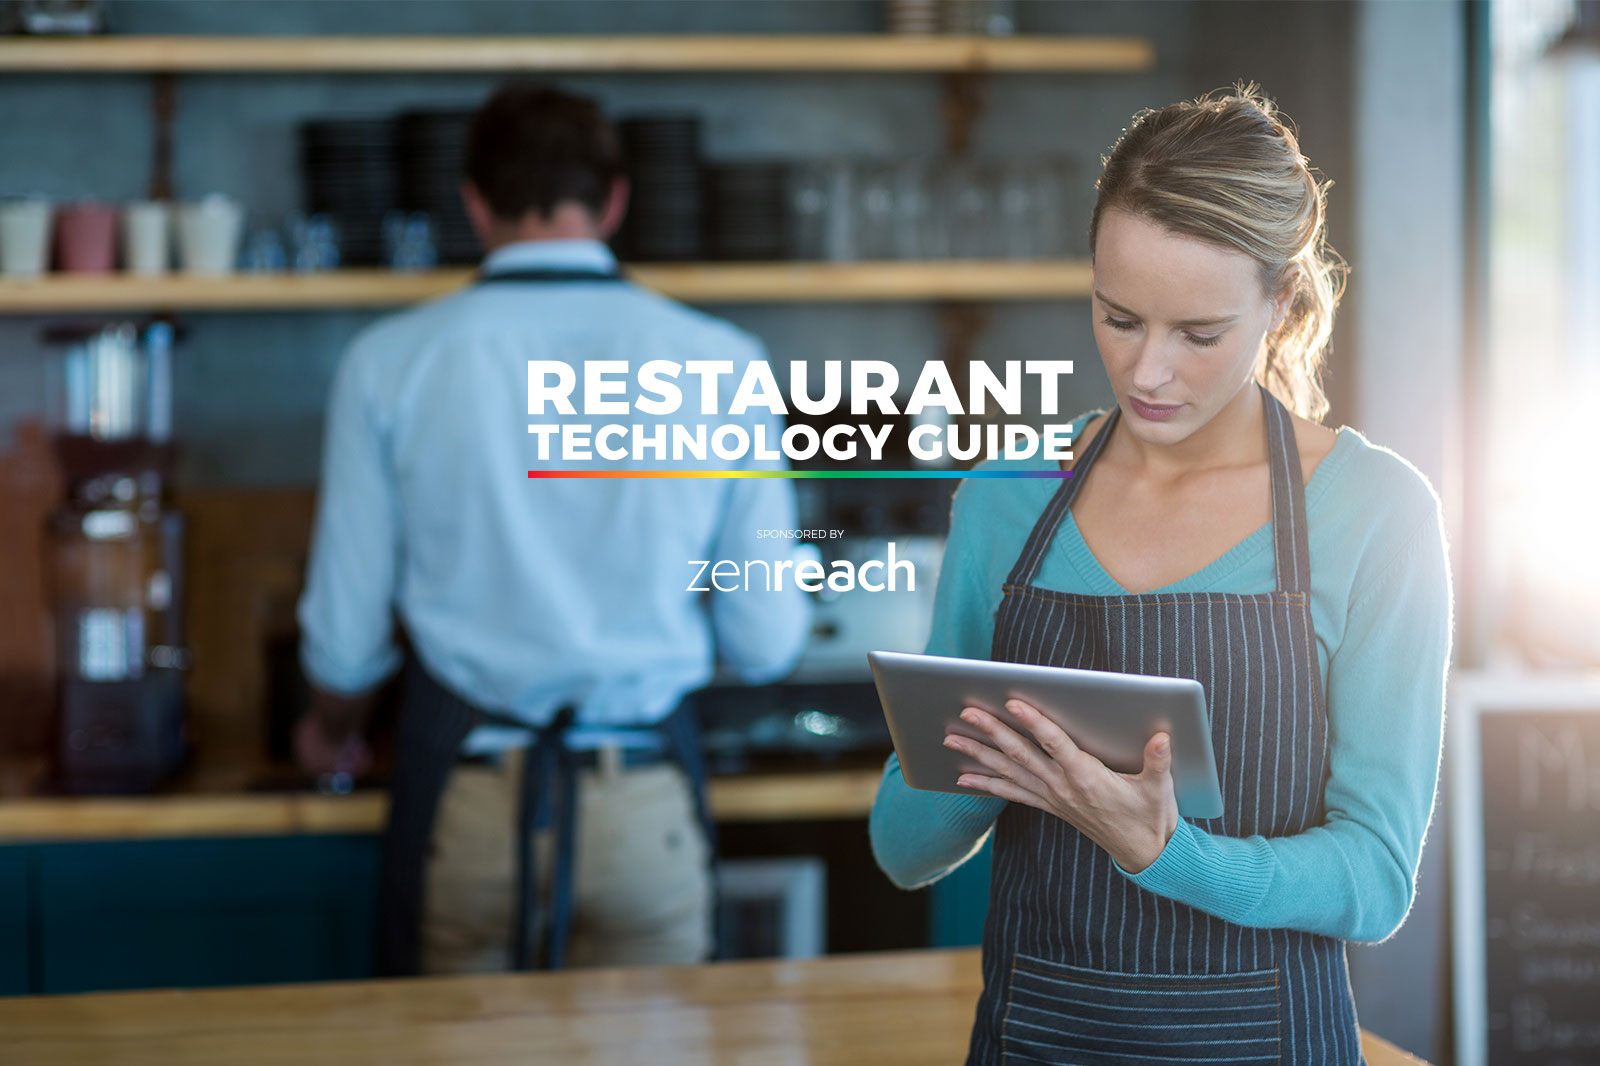 Restaurant Technology Guide